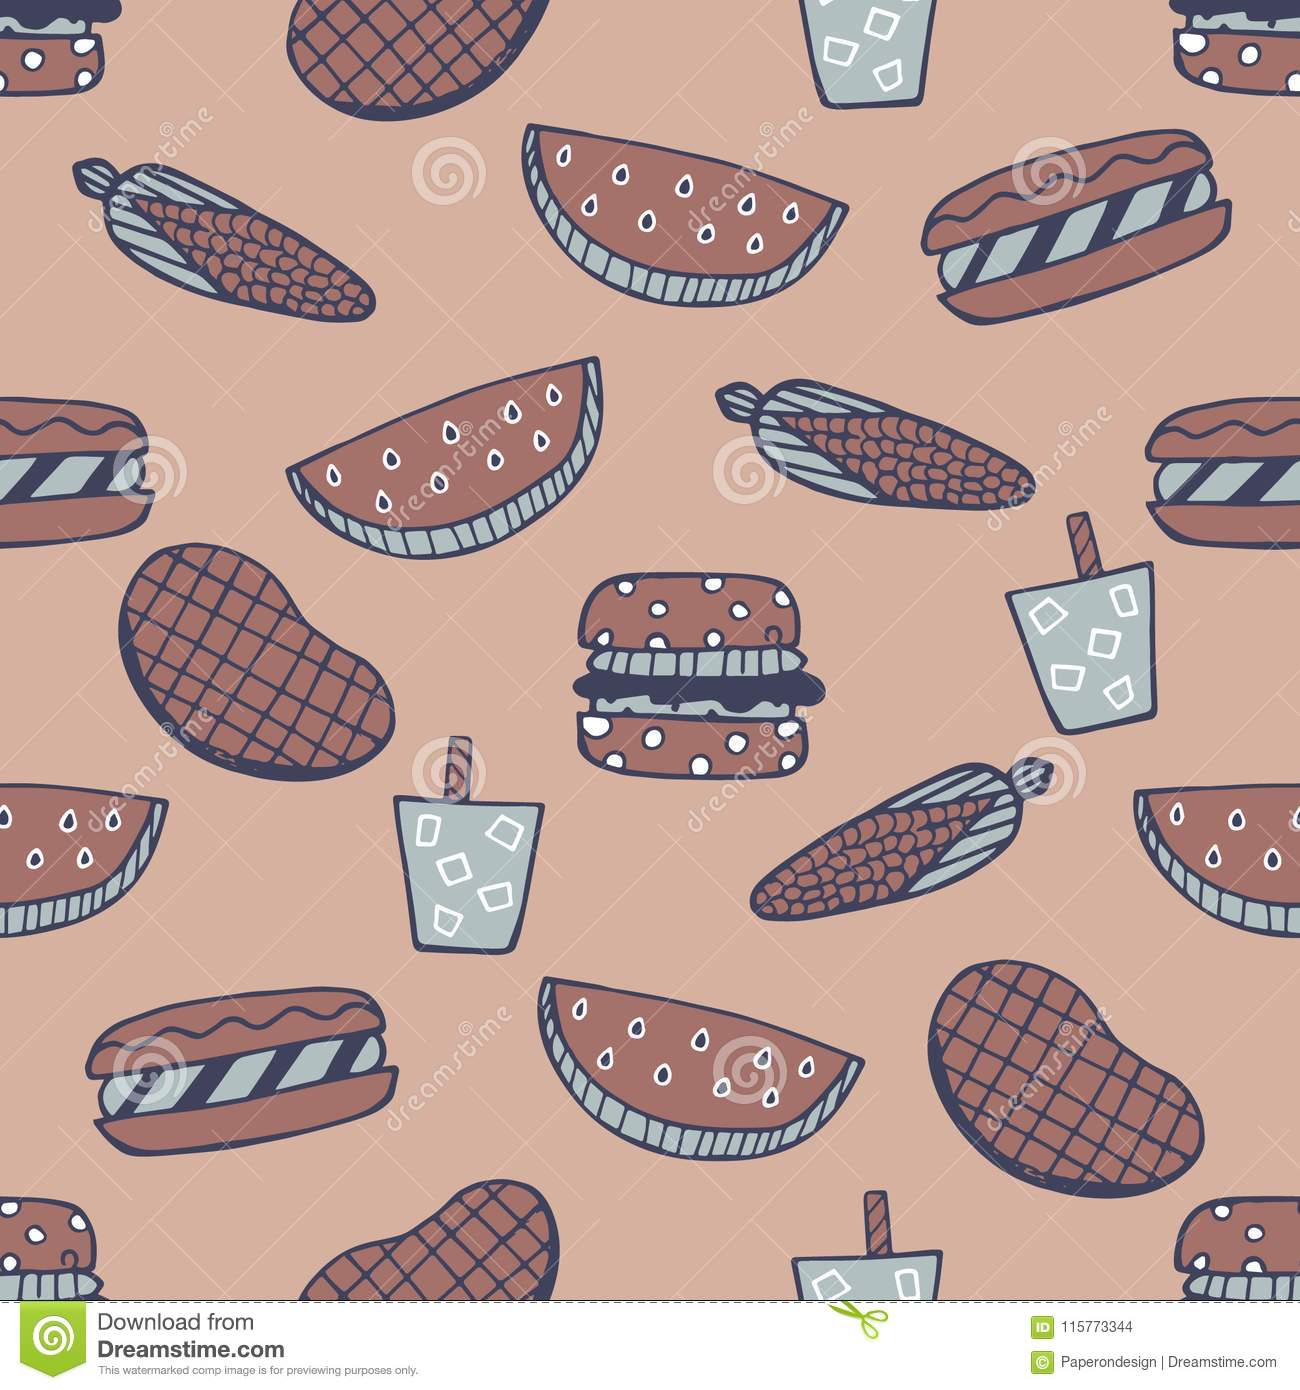 Barbecue Seamless Pattern. Summer cookout with bbq doodles repeat pattern